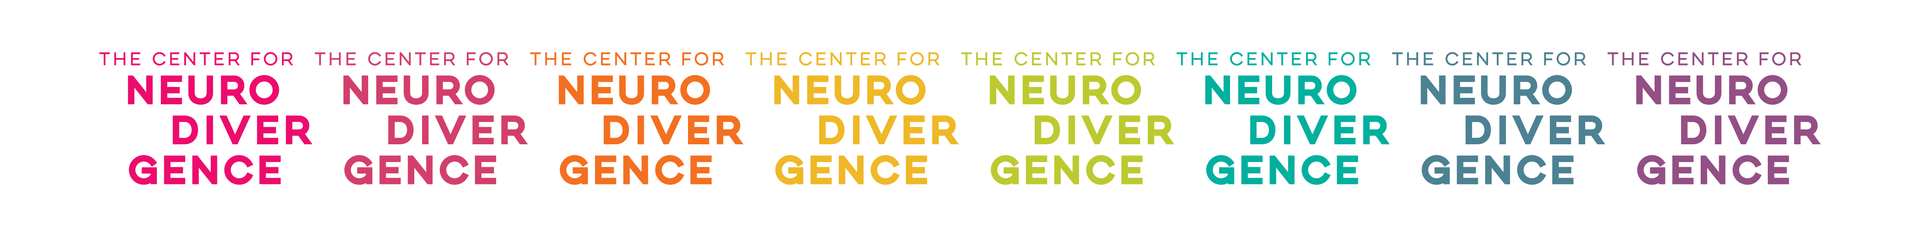 The Center for Neurodivergence Logo